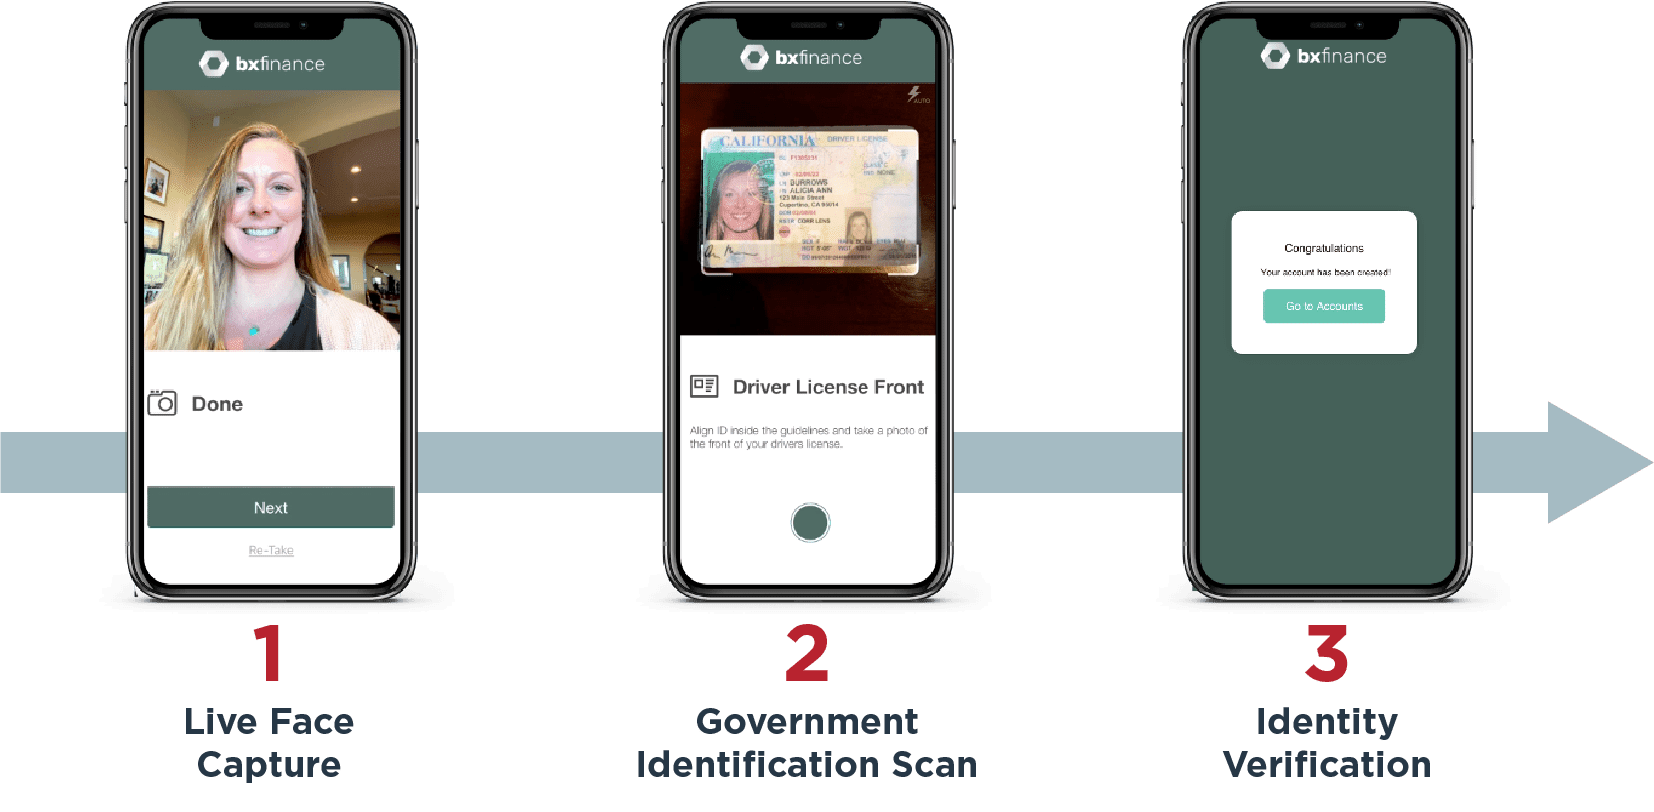 image showing steps for identity verification on a mobile phone